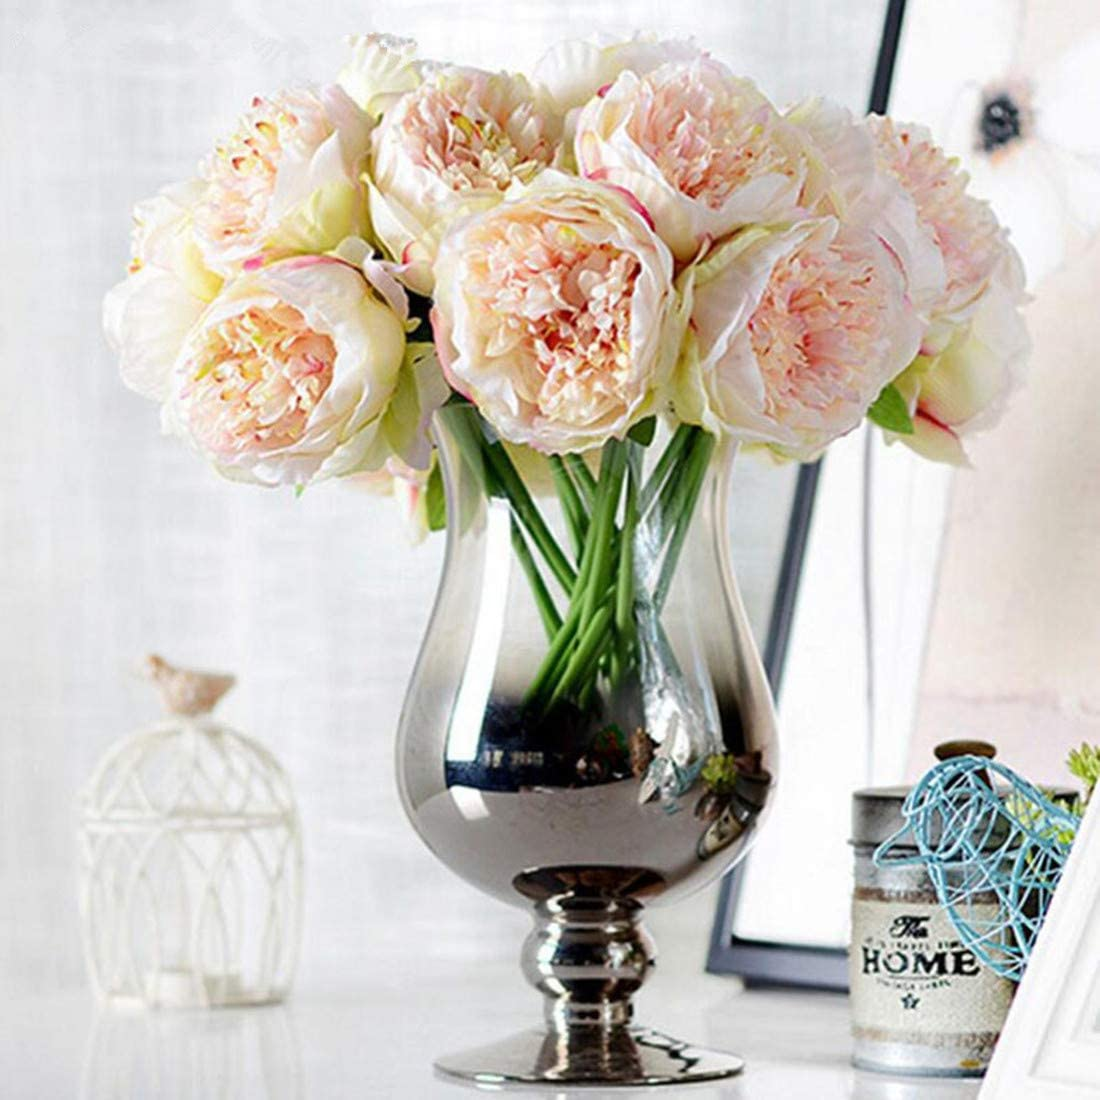 Dwe 5 Head Artificial Flower Fake Silk Peony Bridal Bouquet Christmas Wedding Party Home Decorative Champagne Amazon Co Uk Kitchen Home